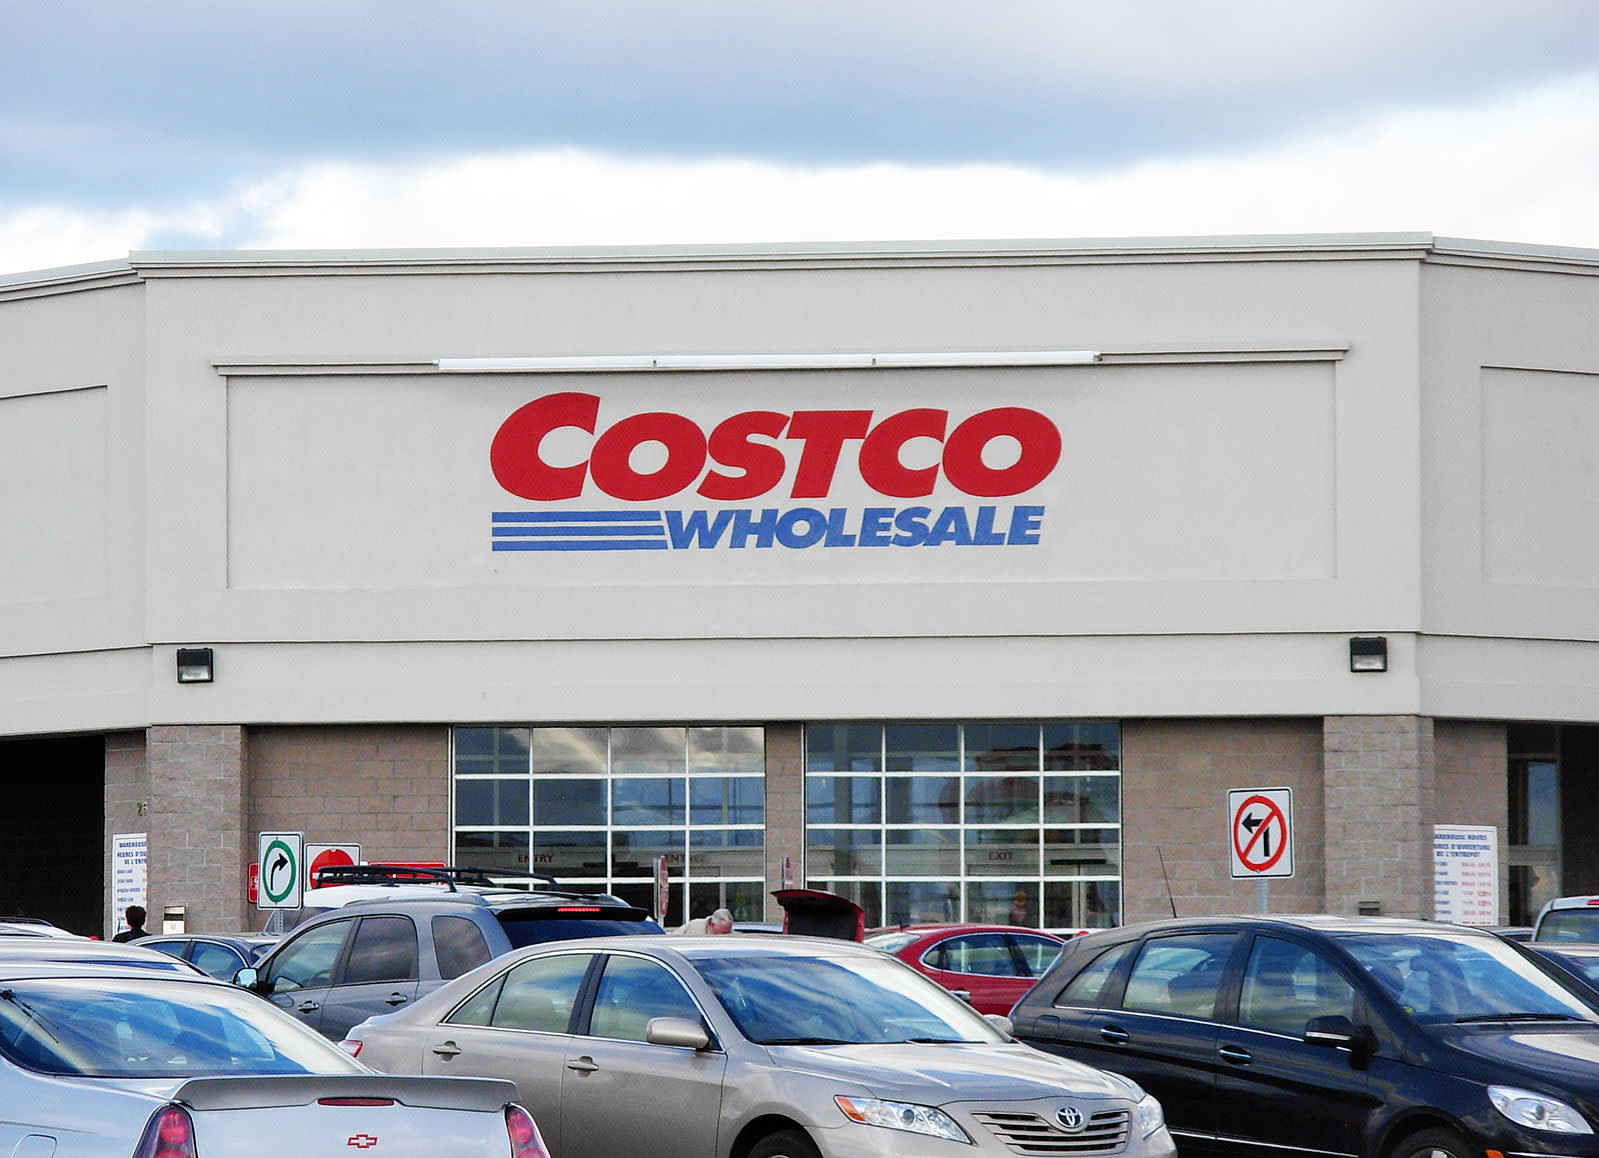 Costco is a retail apocalypse survivor